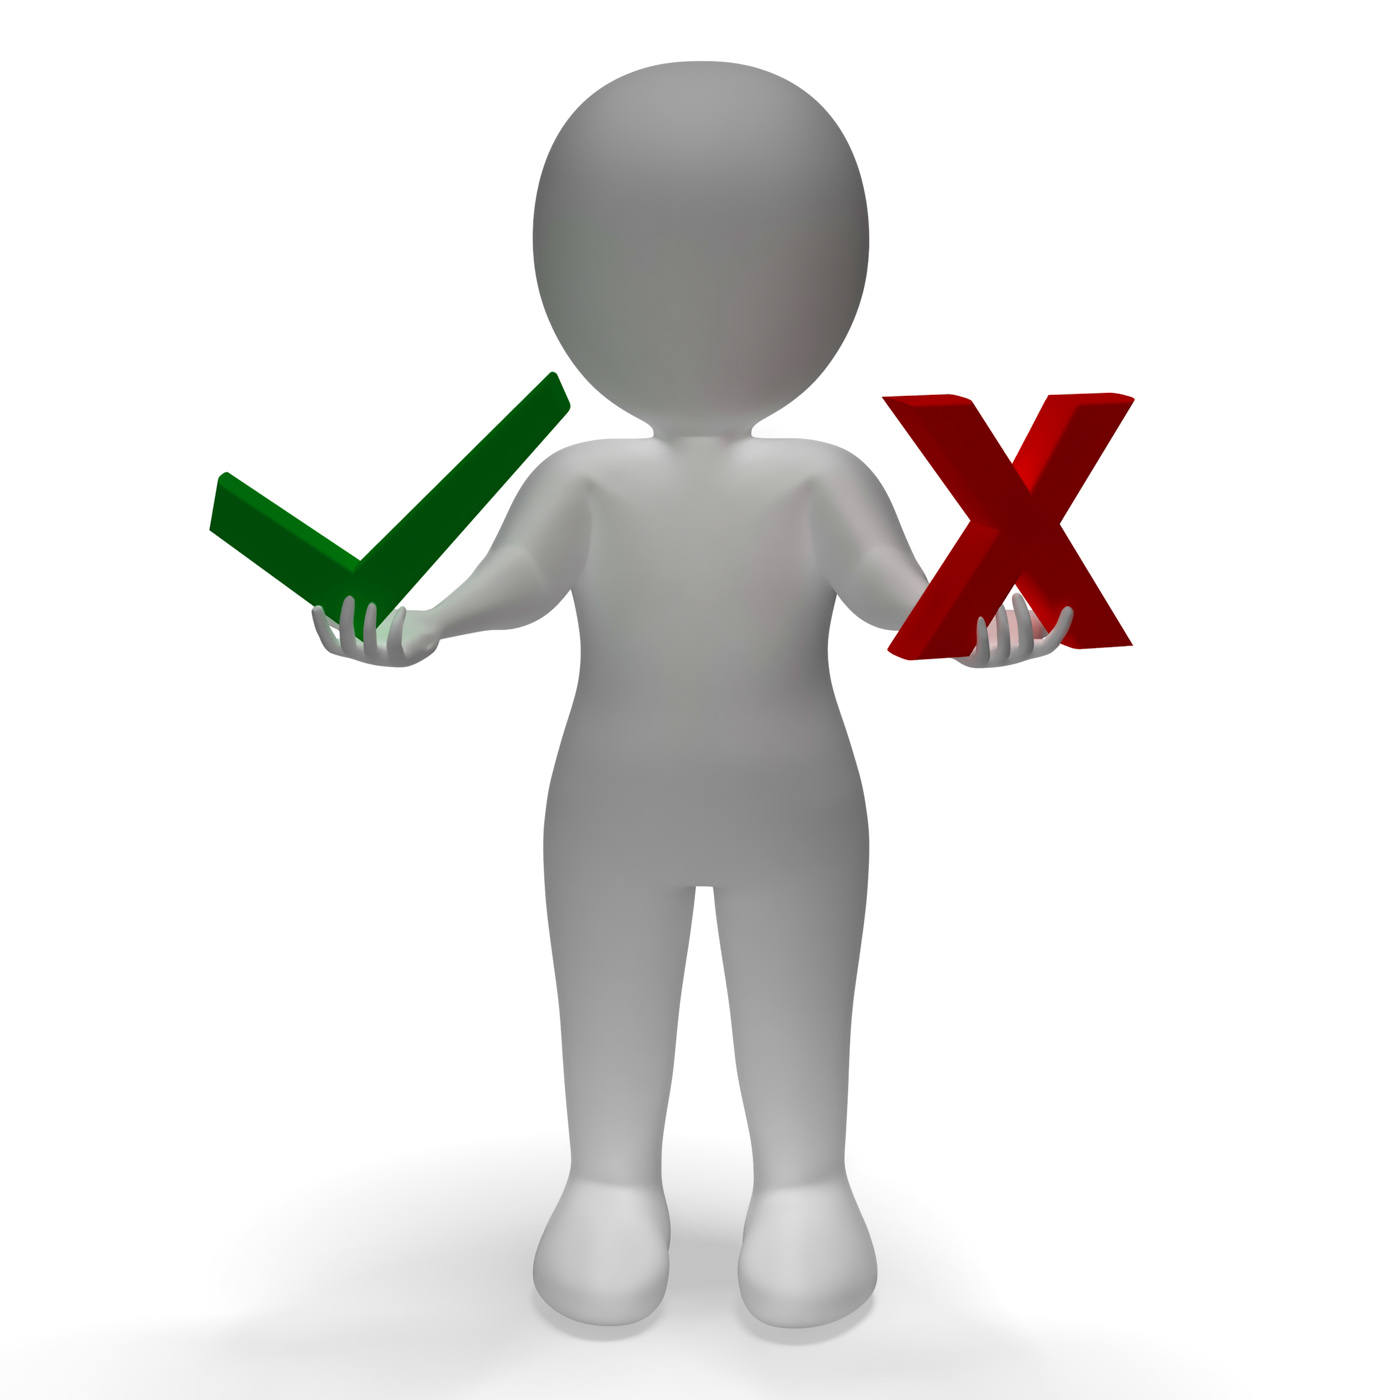 Tick and cross symbols showing choice or decision photo